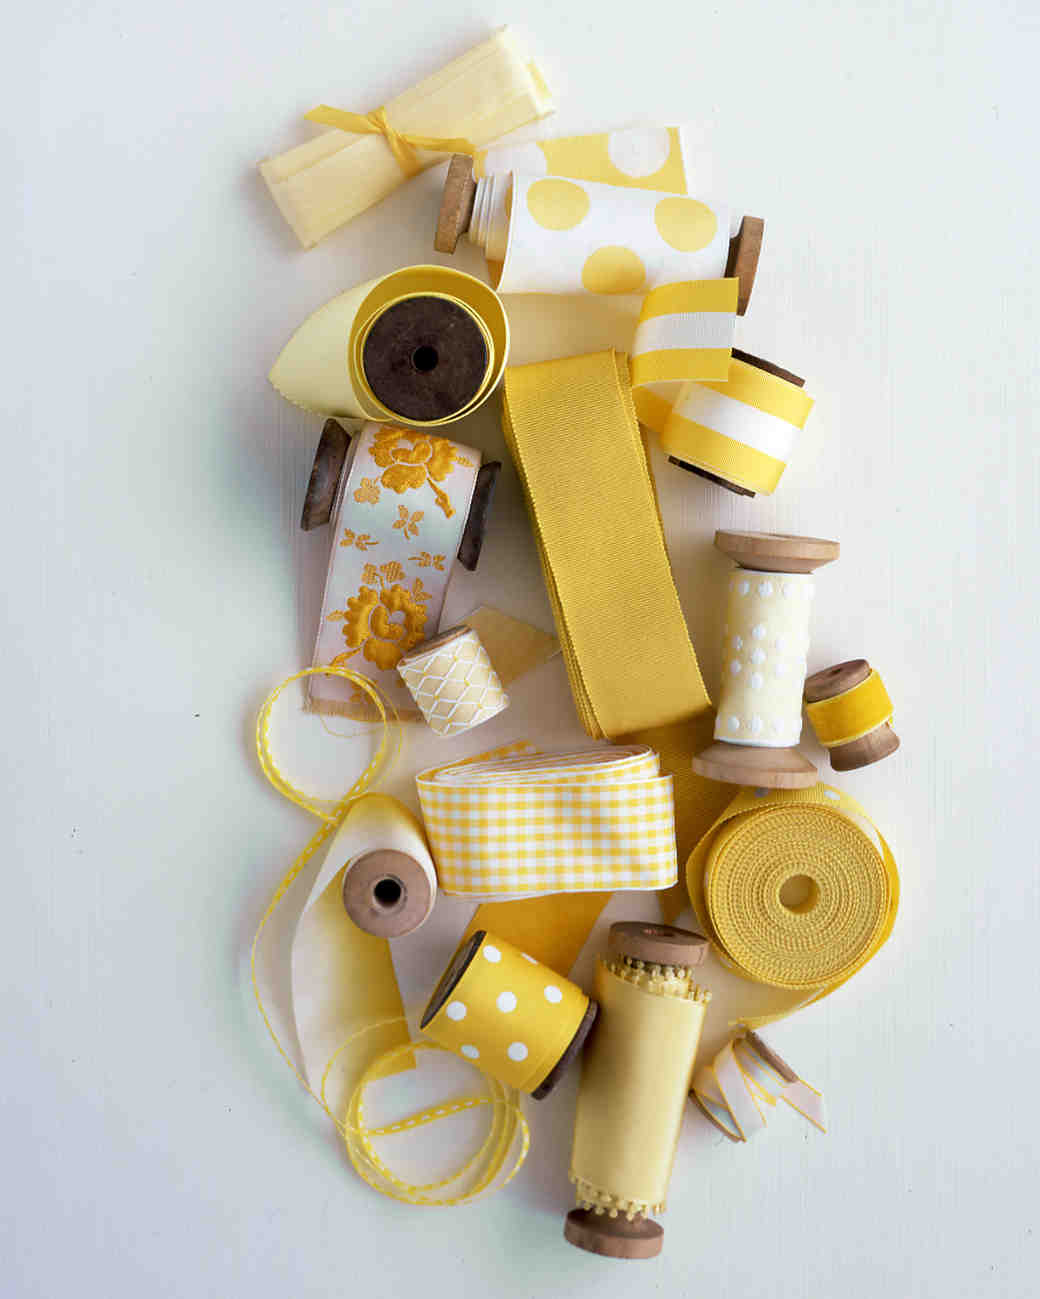 diy-sources-ribbon-wa102009-1014.jpg